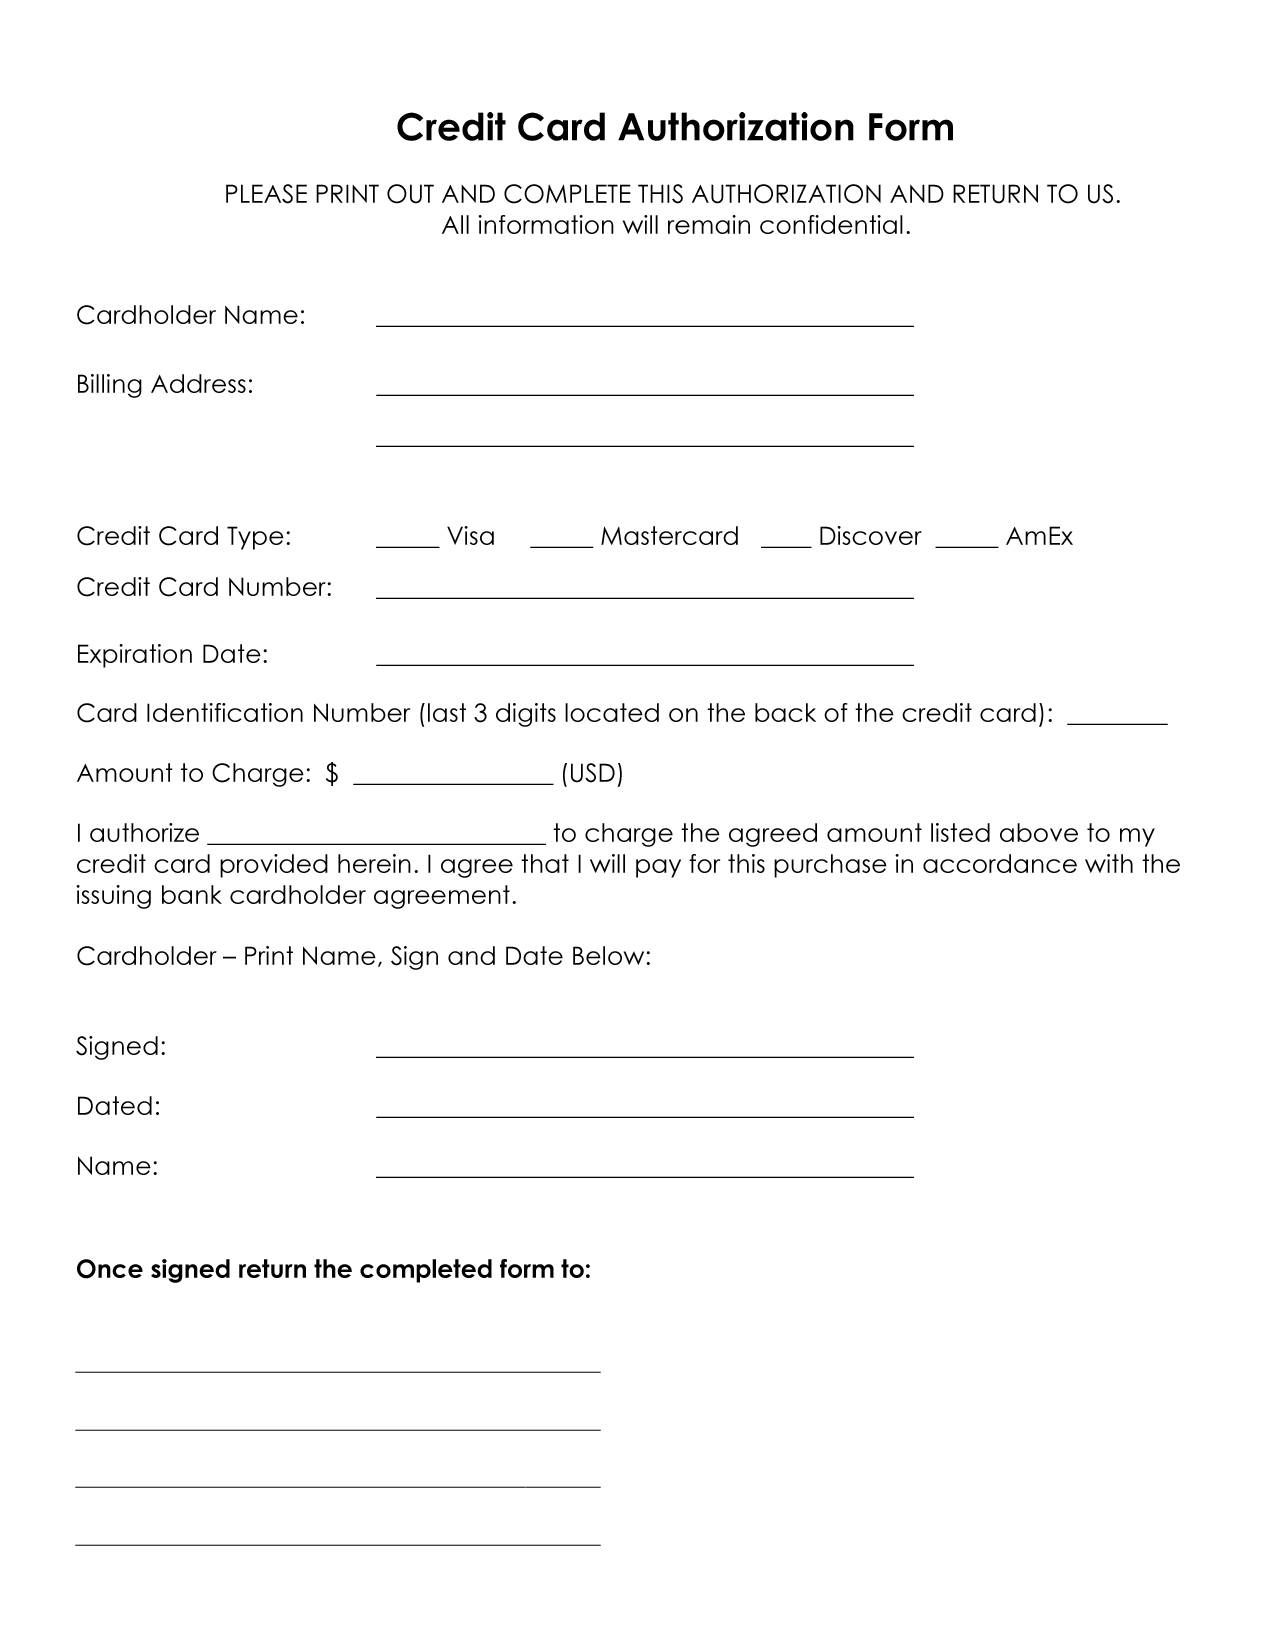 Cool Credit Card Authorization Form Sample For Printing